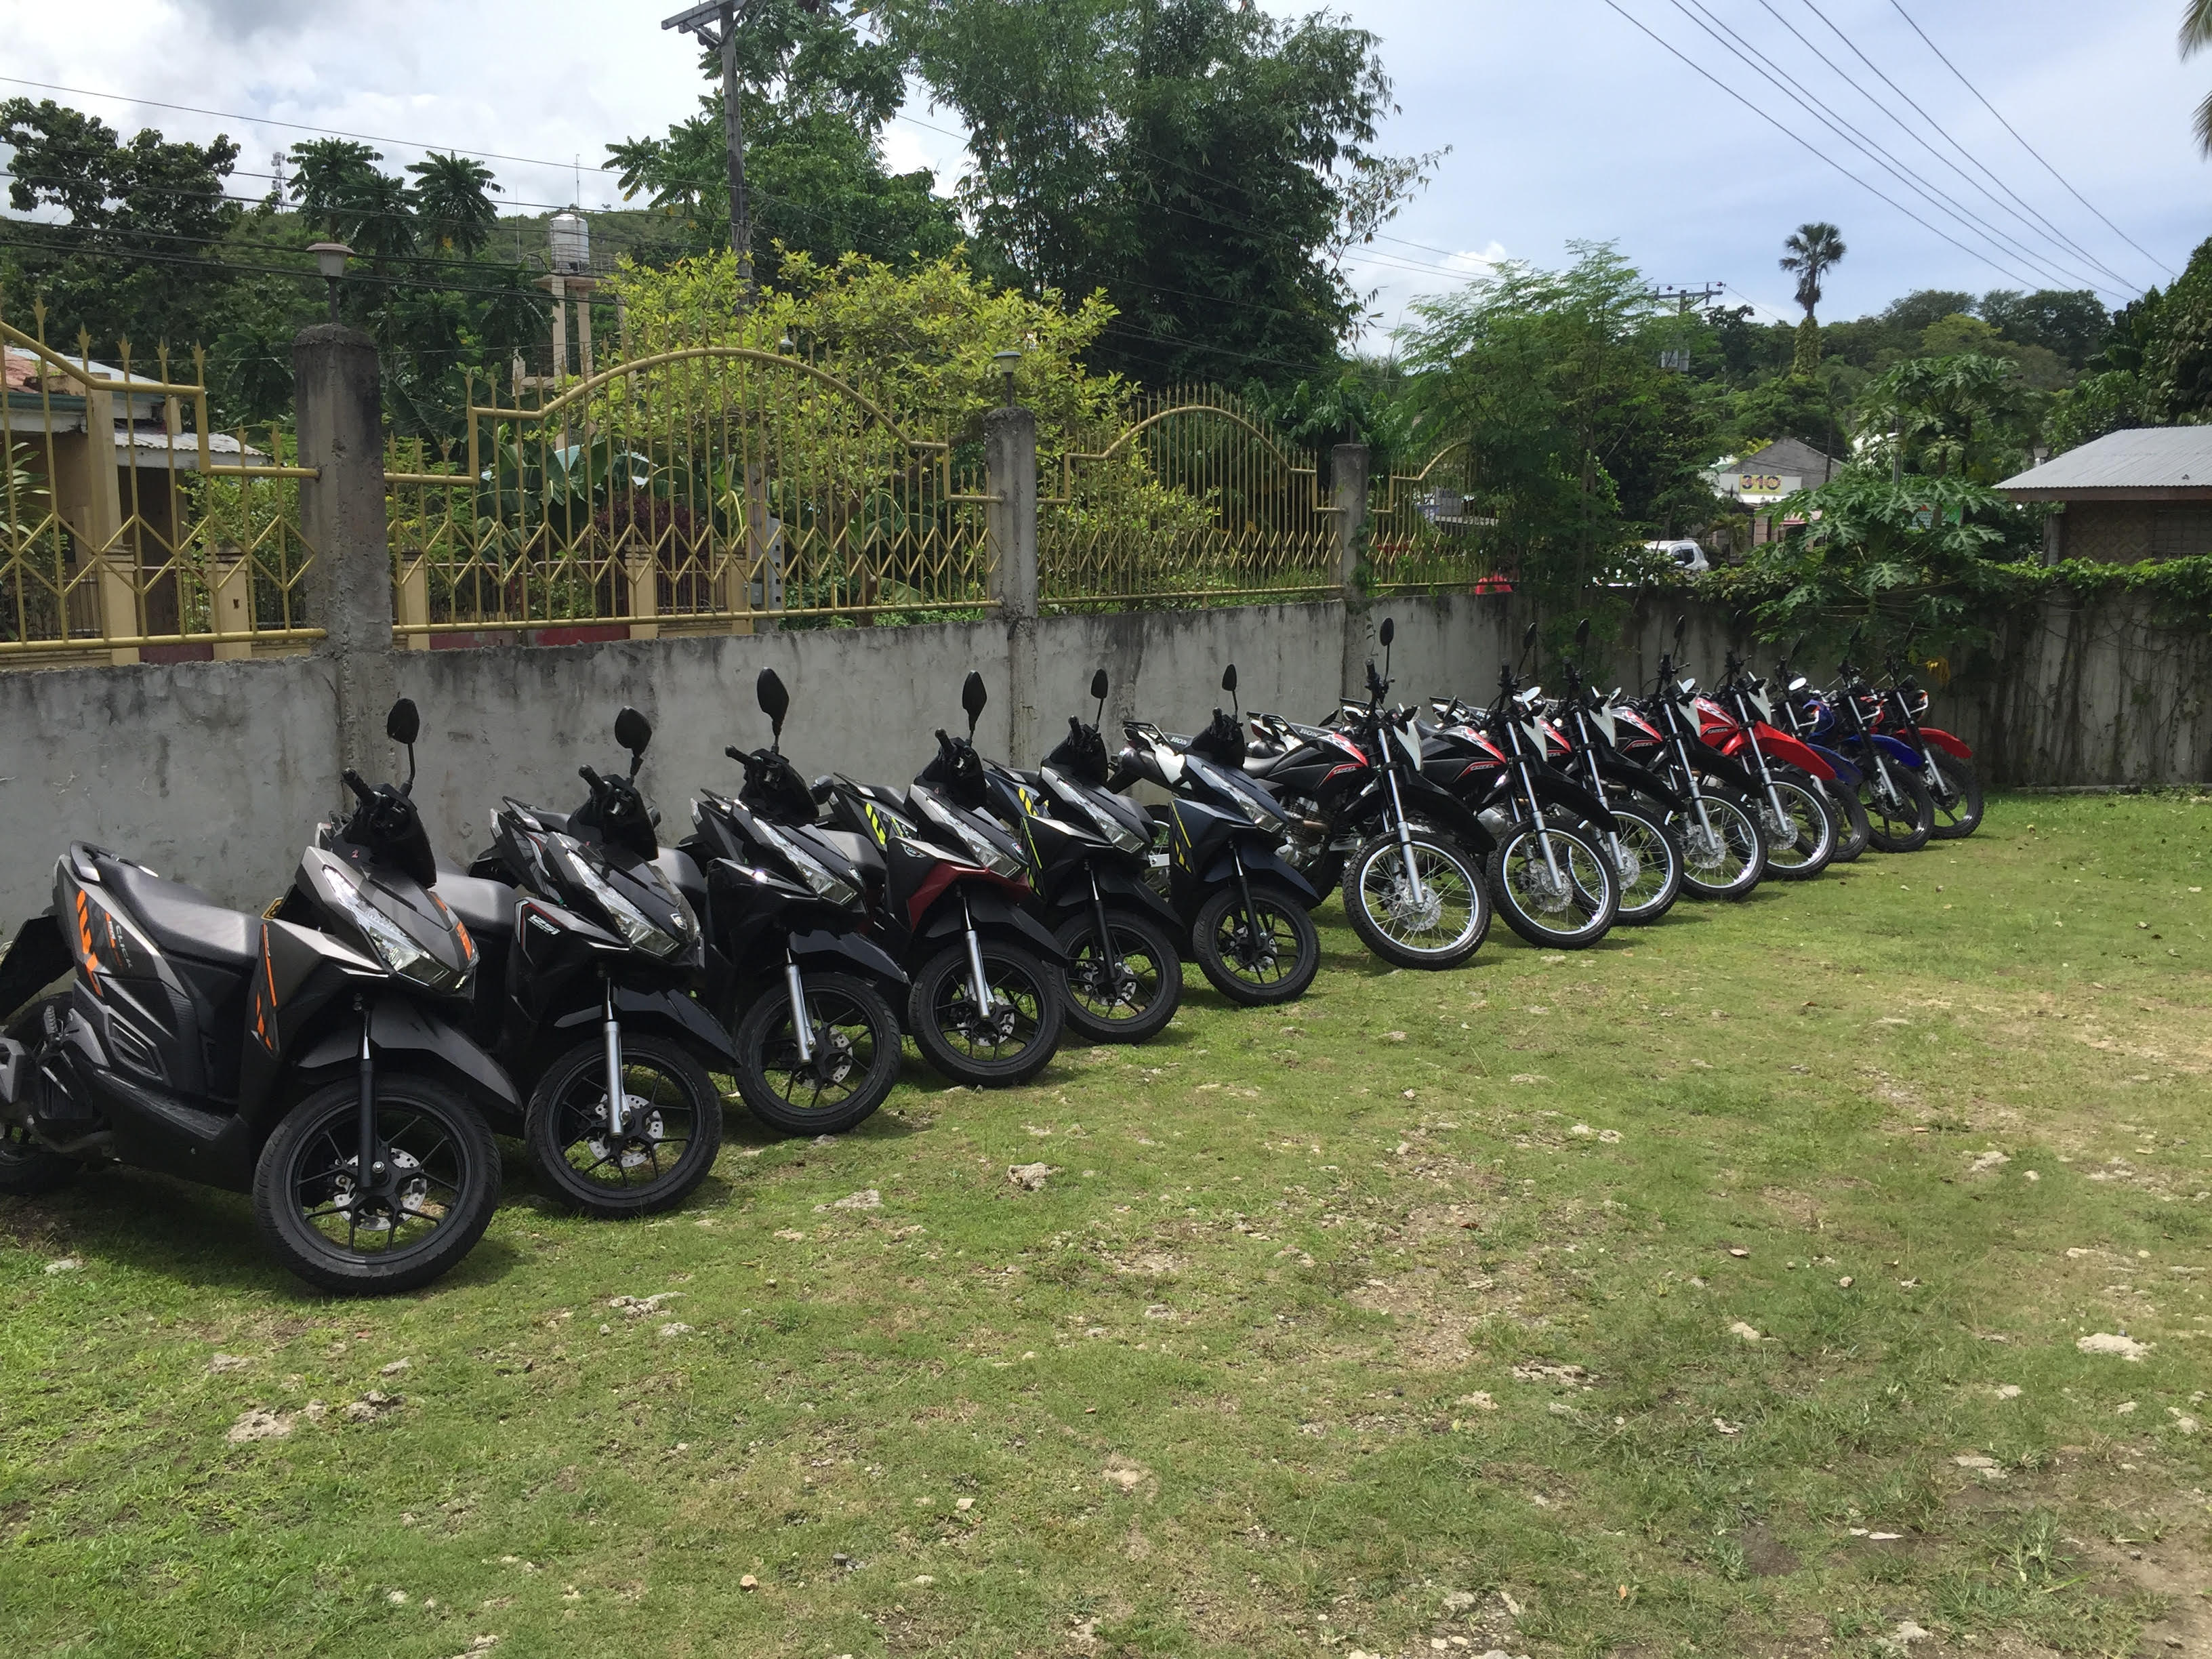 Rent motorcycles and scooters in Bohol